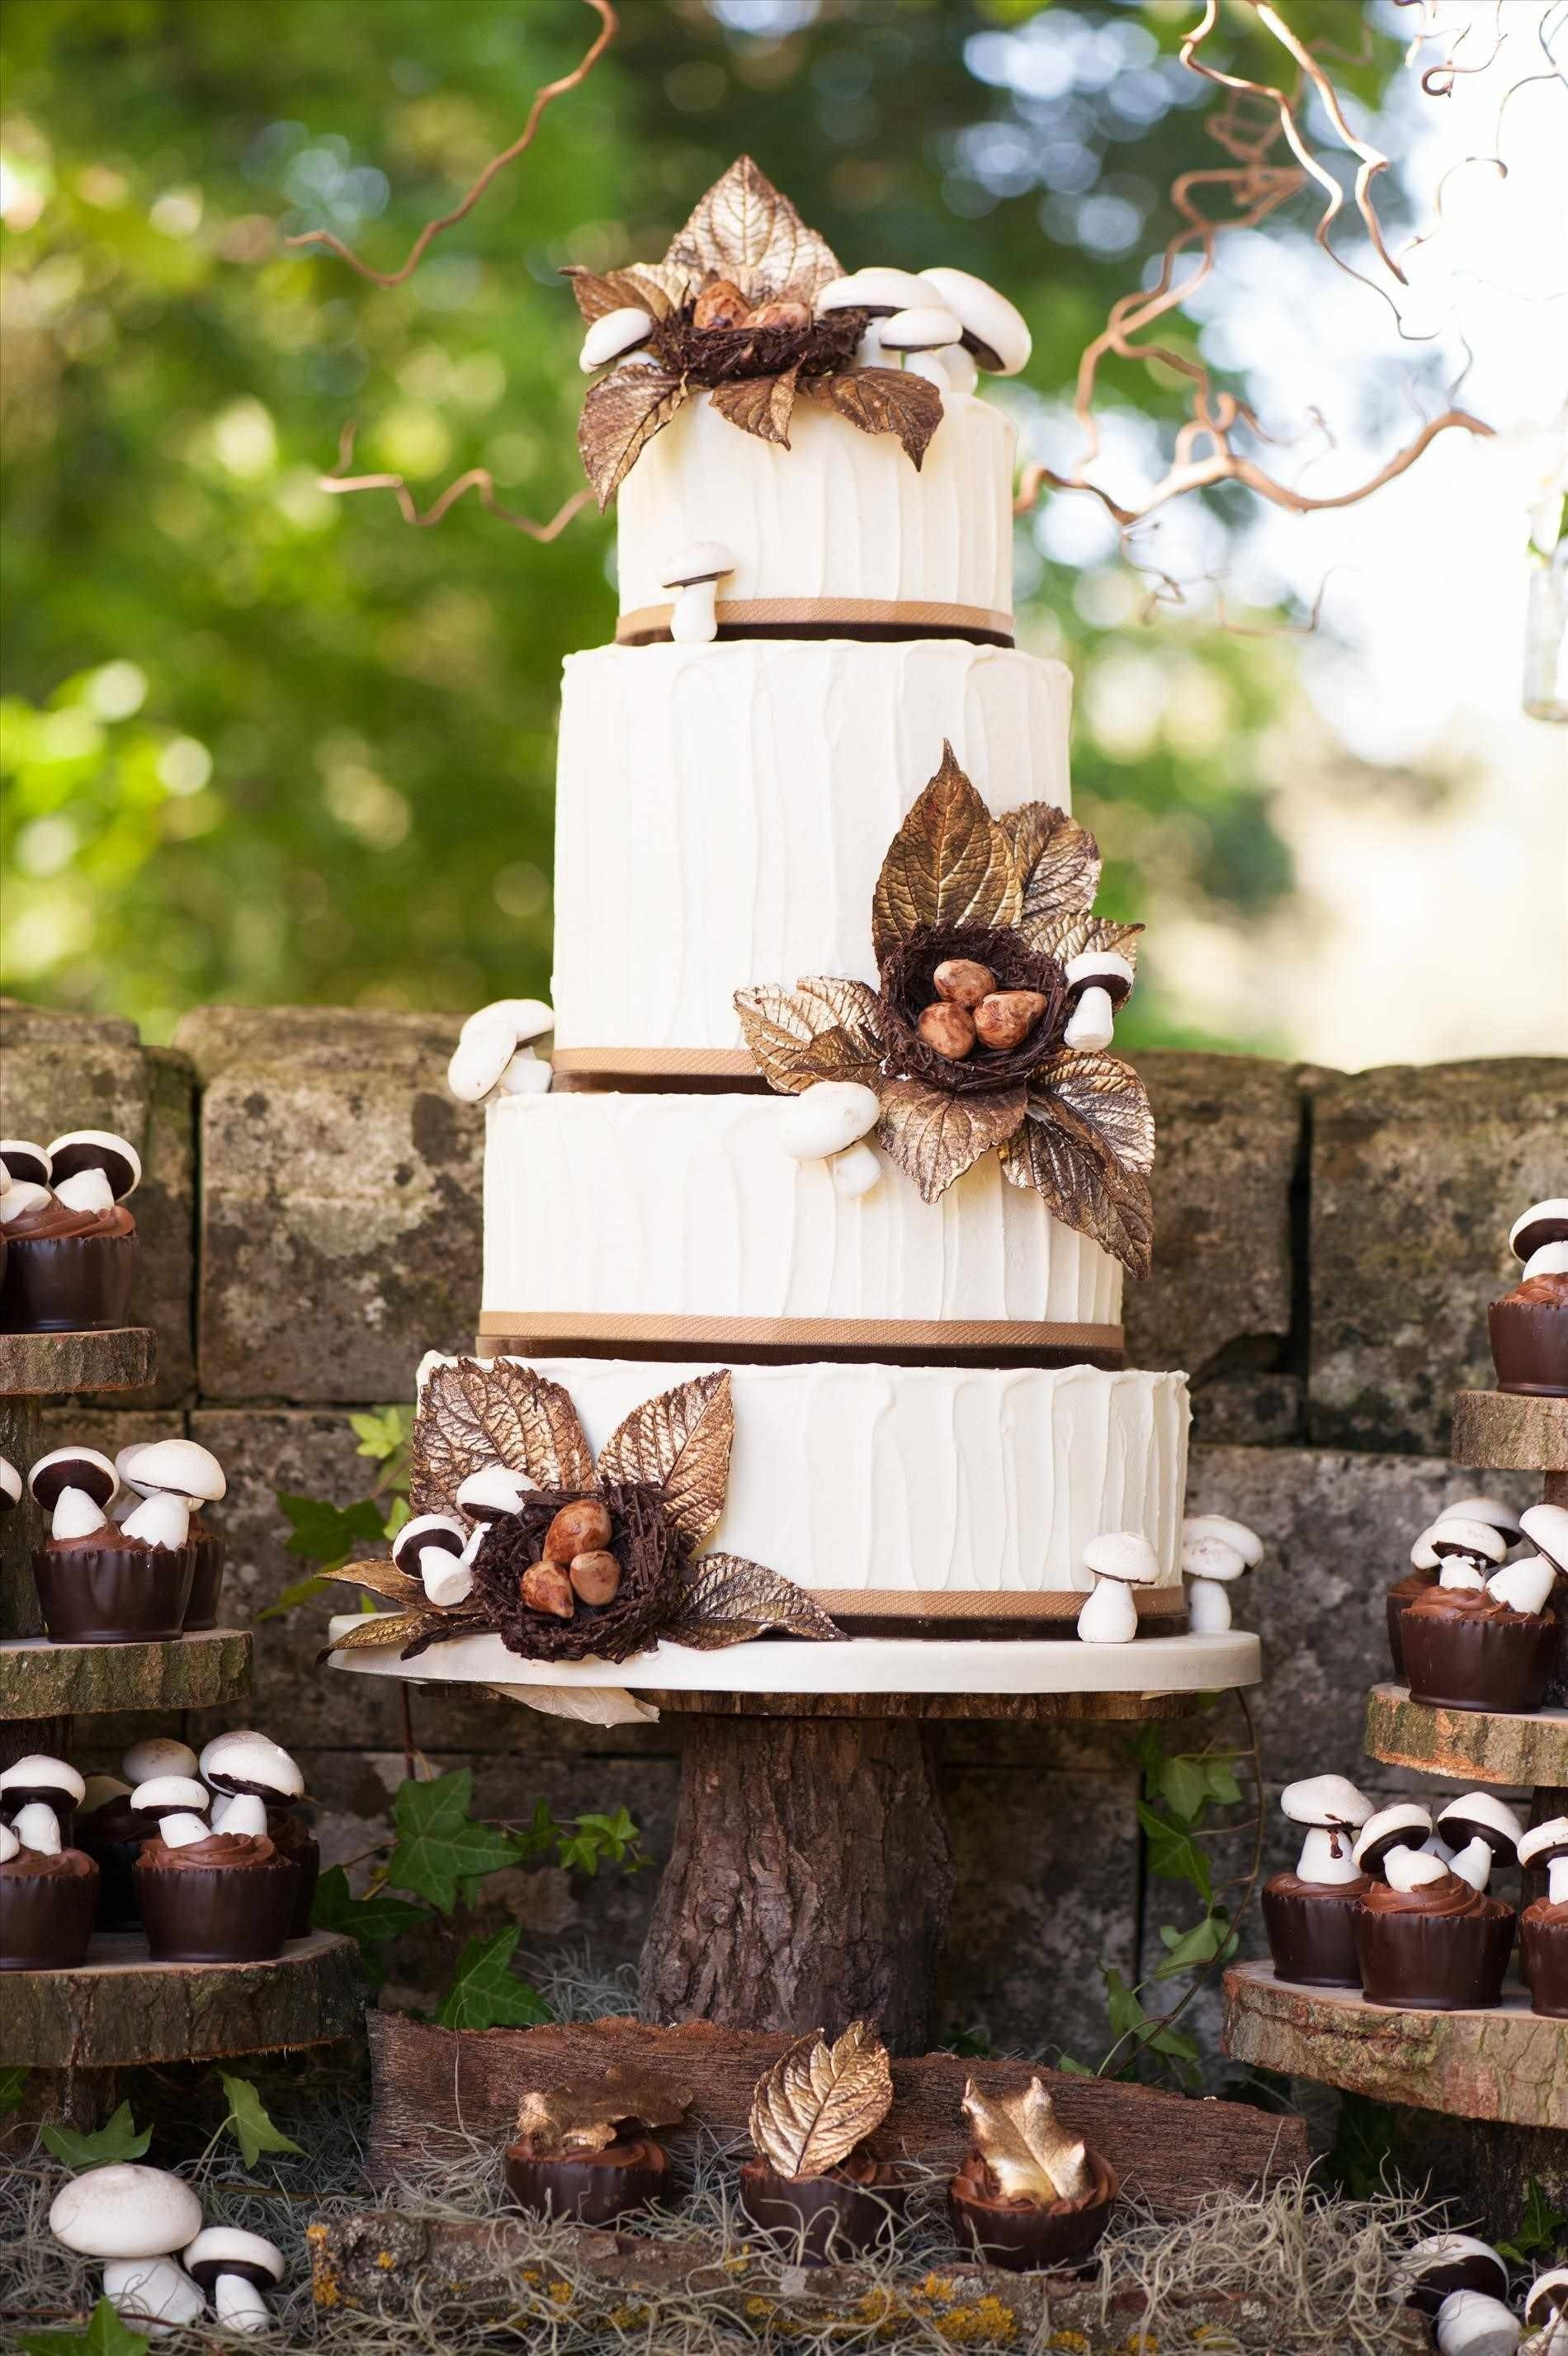 10 Amazing Country Wedding Ideas For Fall unbelievable woodland themed cake country wedding ideas for picture 2021